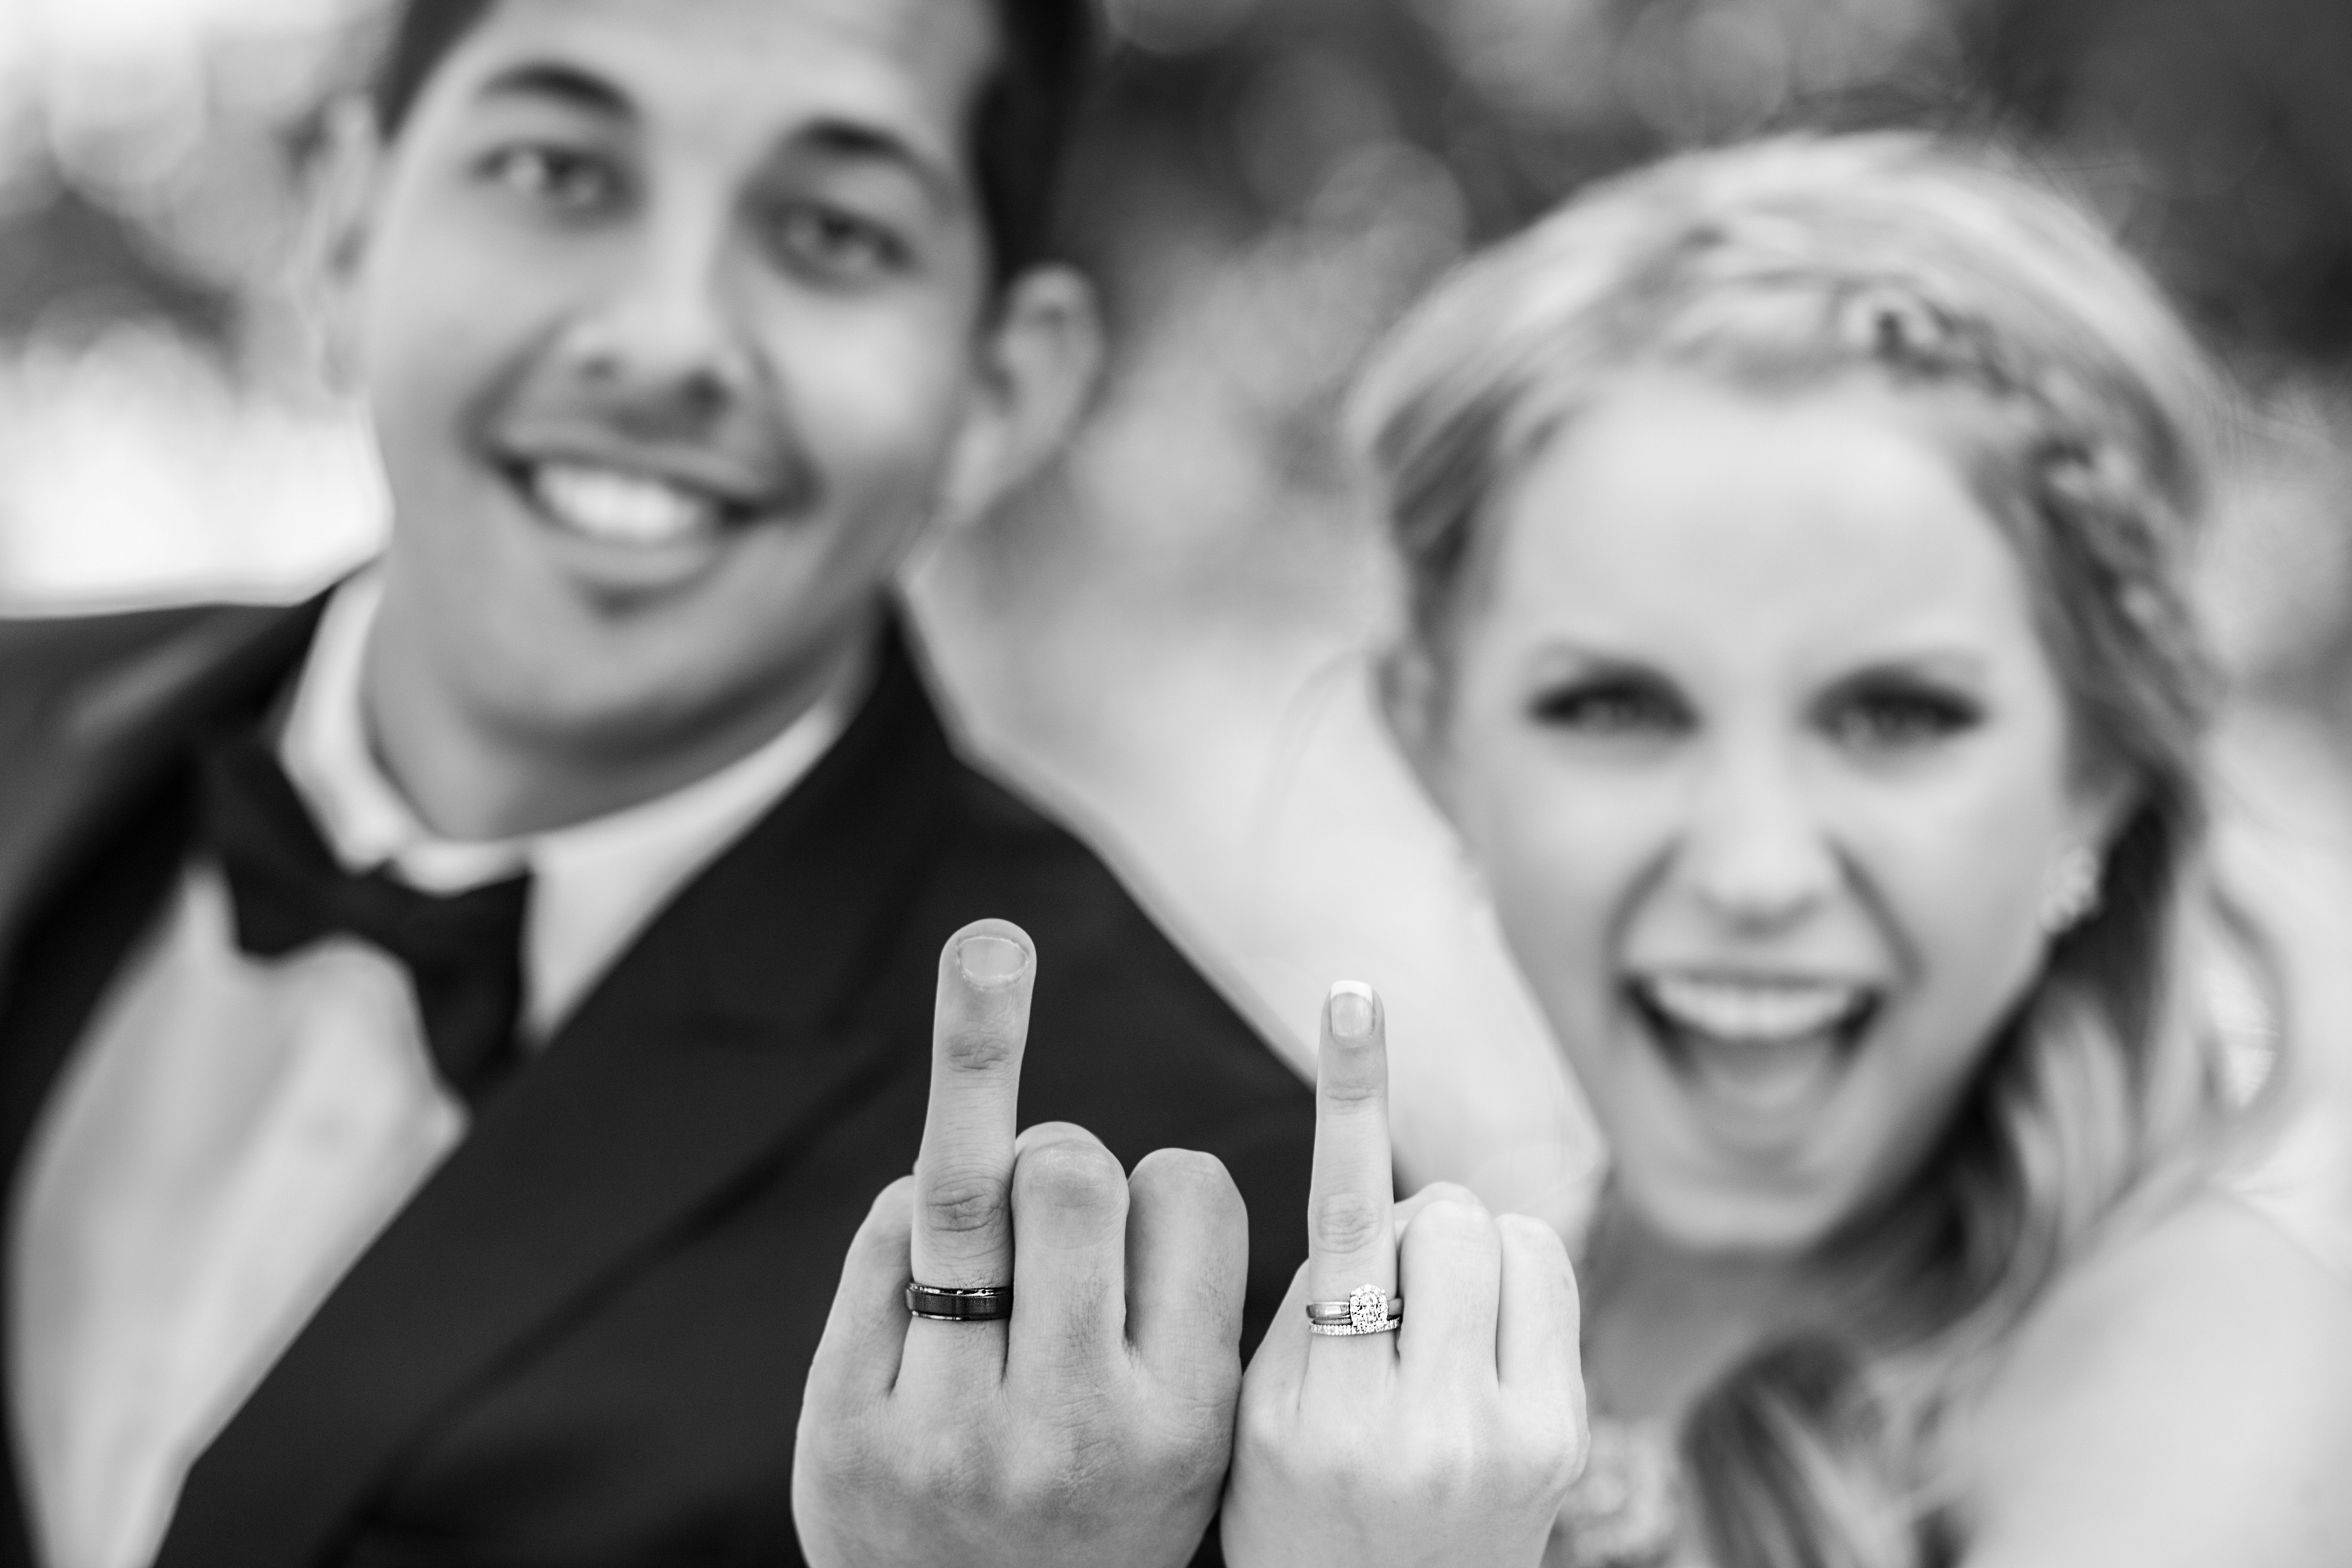 Bride And Groom Flipping Off Camera With Ring Fingers Myers Video Production Wedding Fine Art Photography Wedding Ringa Wedding Photos Wedding Photography